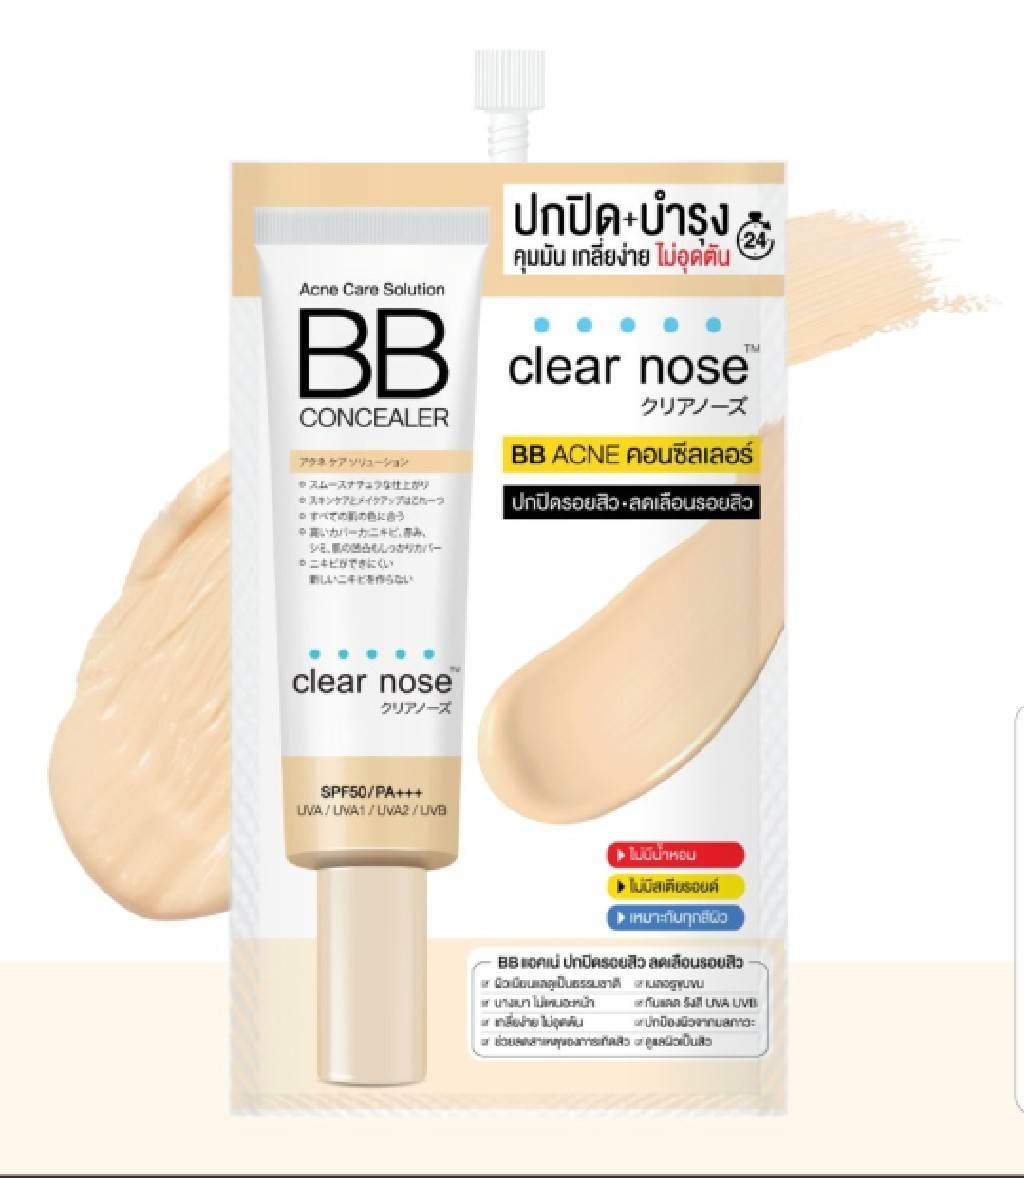 Clear Nose Acne Care Solution BB concealer (ซอง)